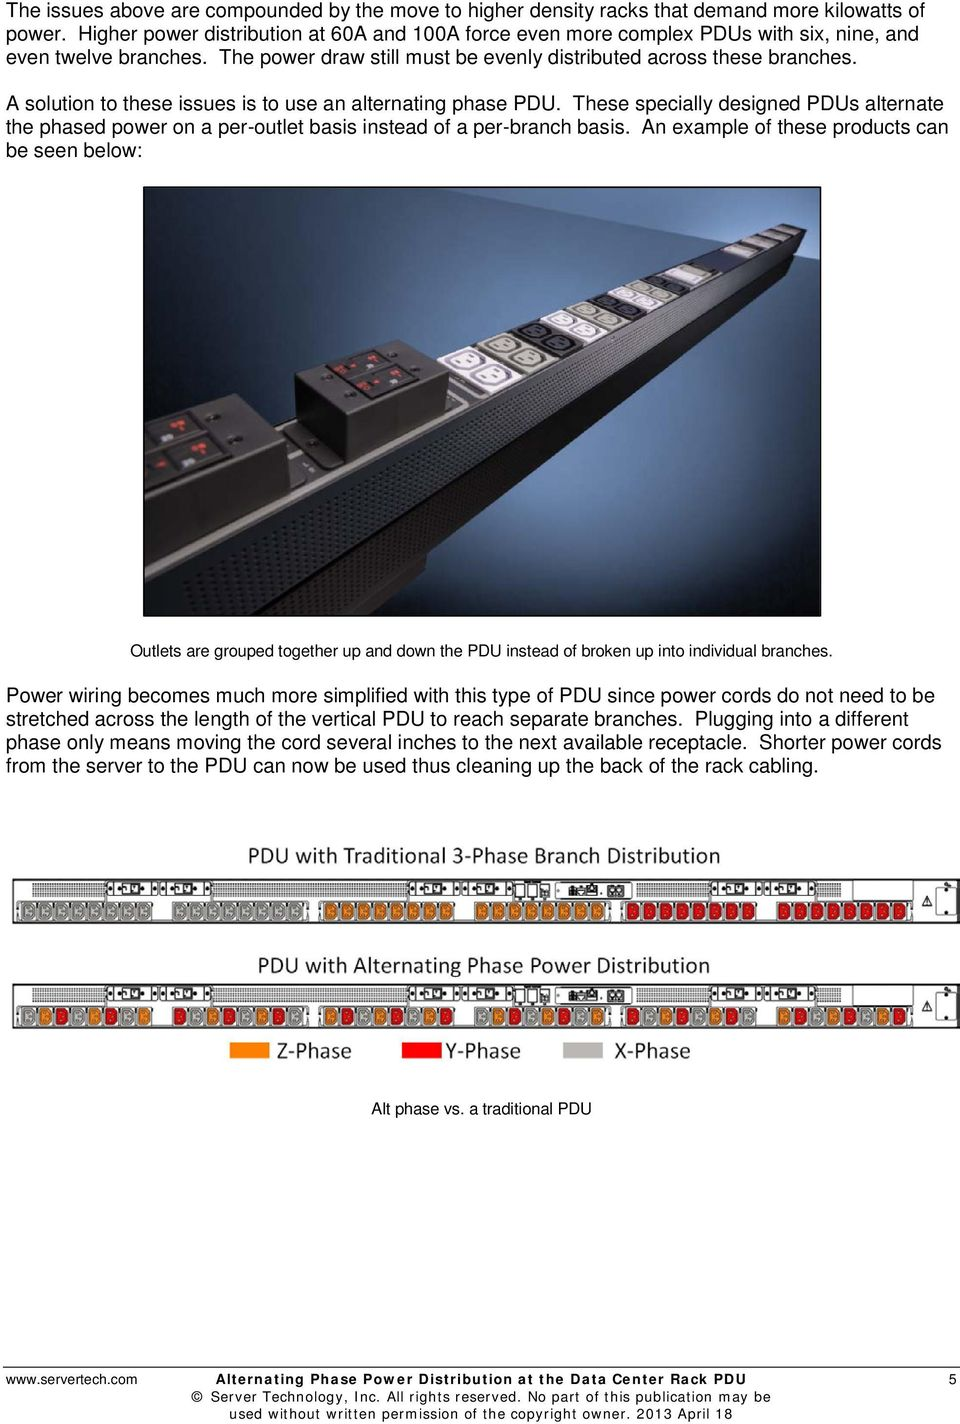 A solution to these issues is to use an alternating phase PDU. These specially designed PDUs alternate the phased power on a per-outlet basis instead of a per-branch basis.